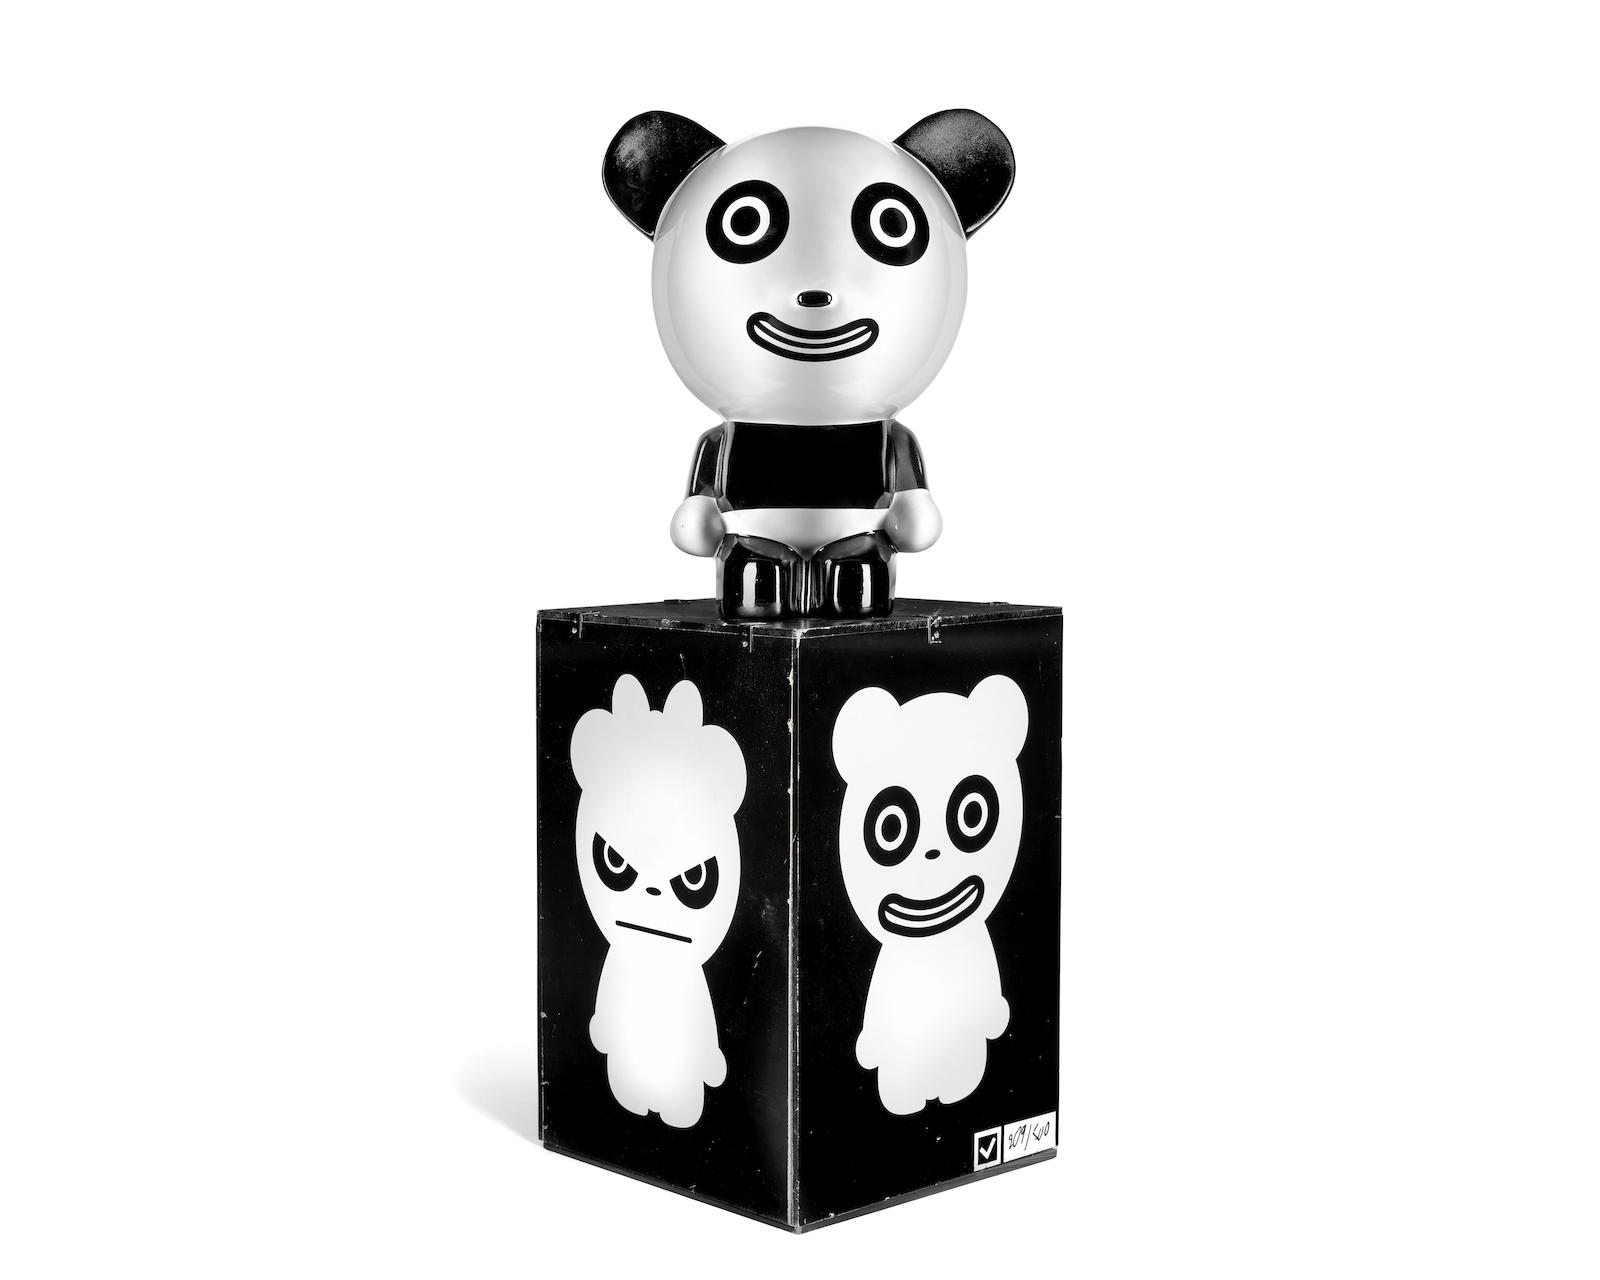 Jiji-Happy Panda, from 'Hi Panda'-2006